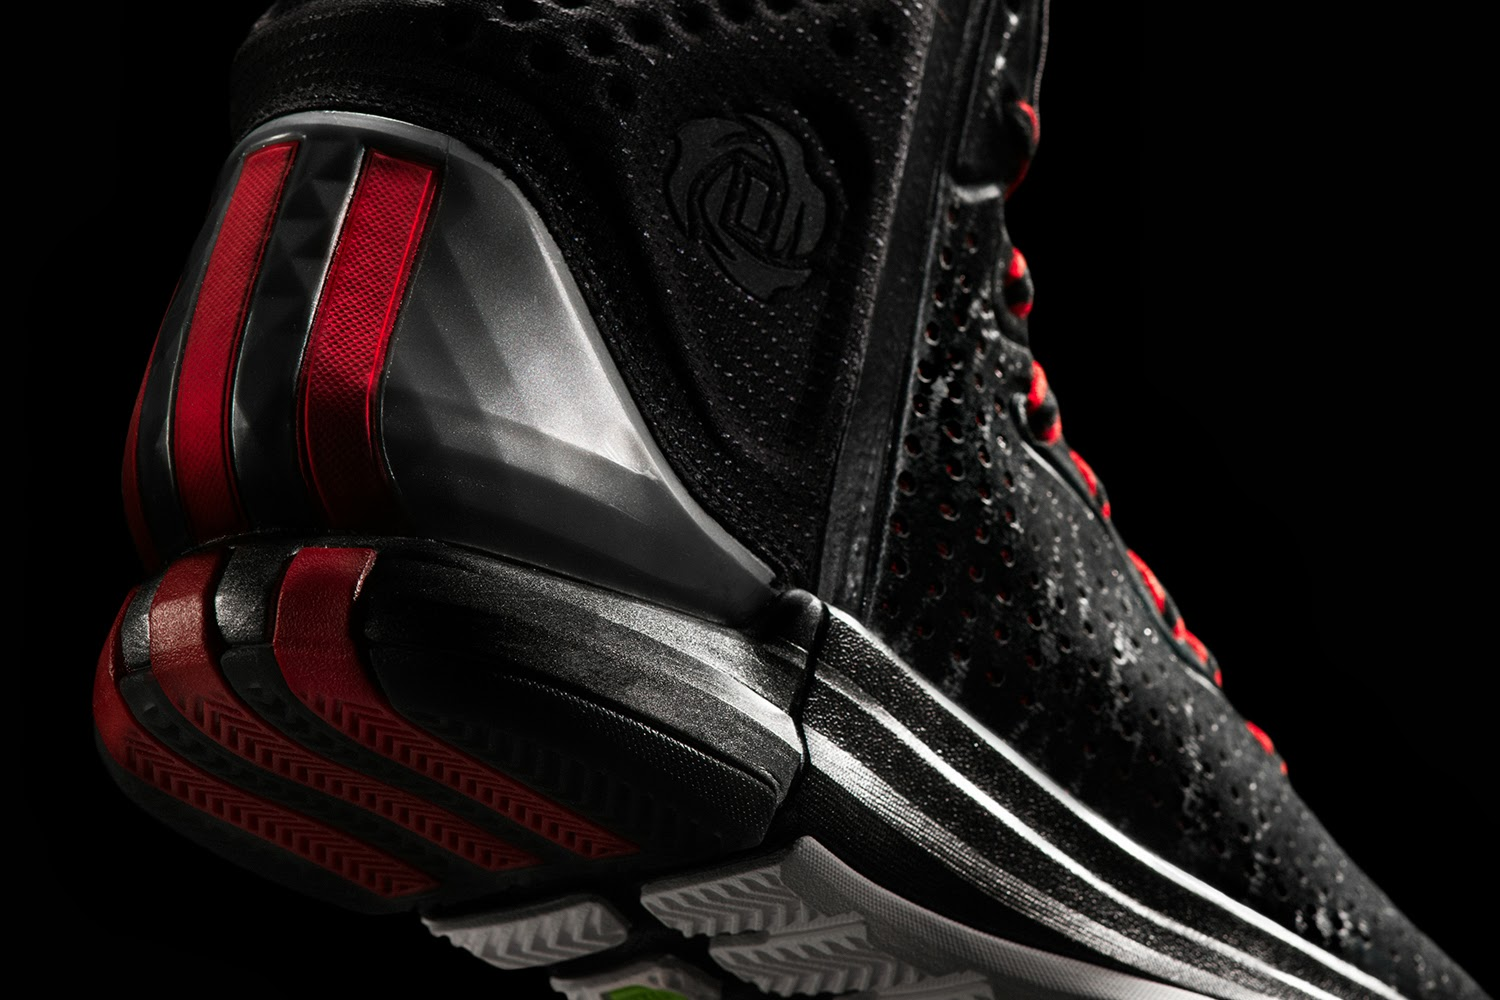 The Dx Matilla Show  adidas D Rose 4 out in the Philippines 10 10 6a6affbc2